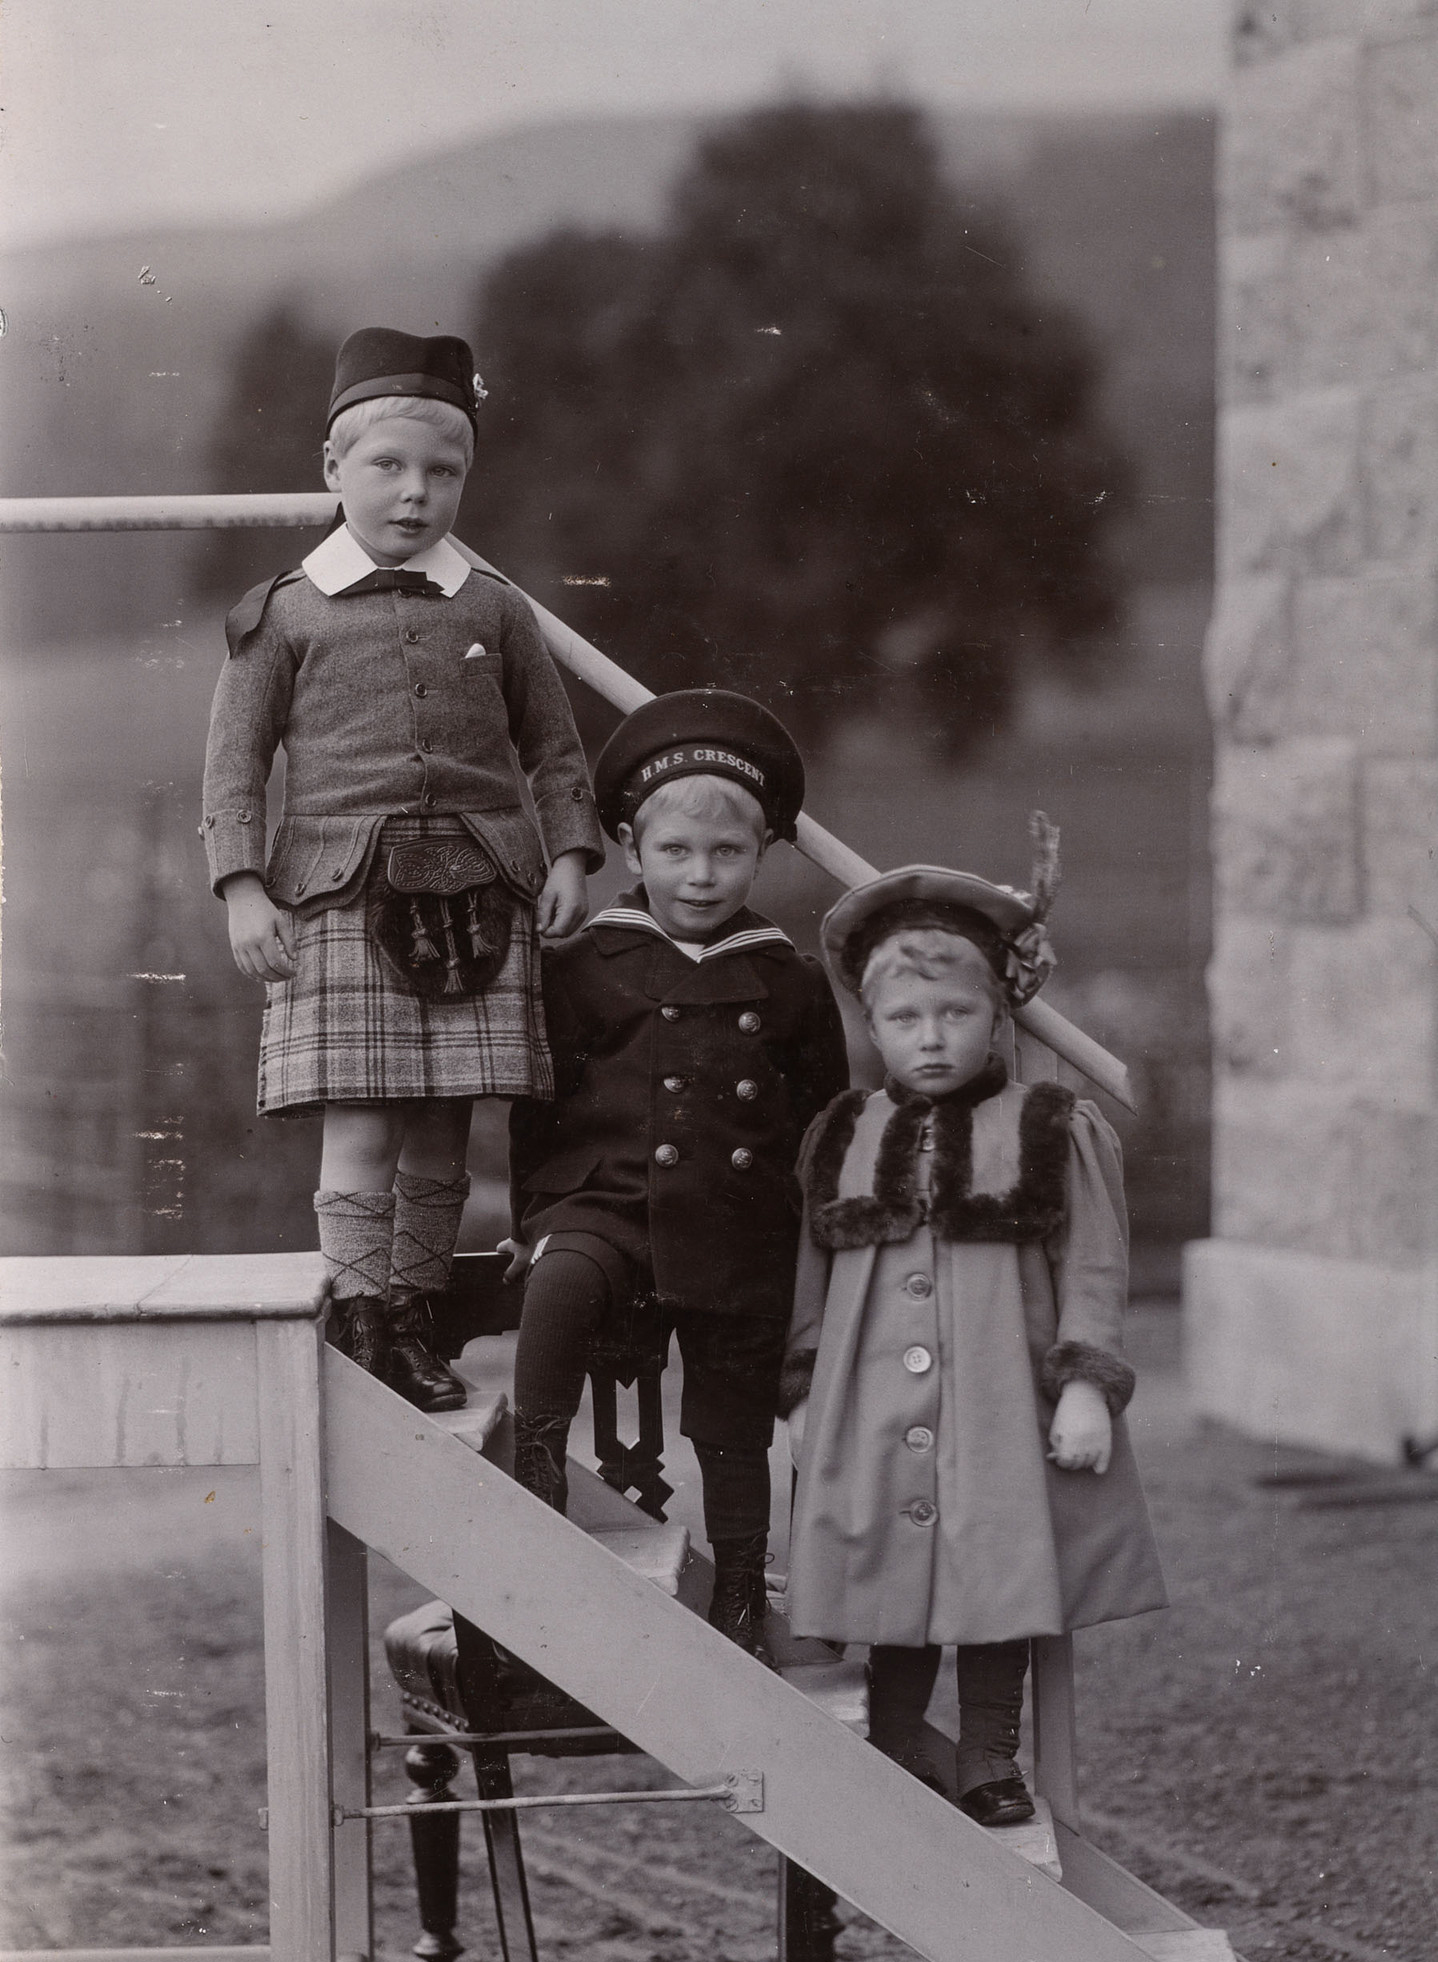 Prince Edward, Prince Albert and Princess Victoria